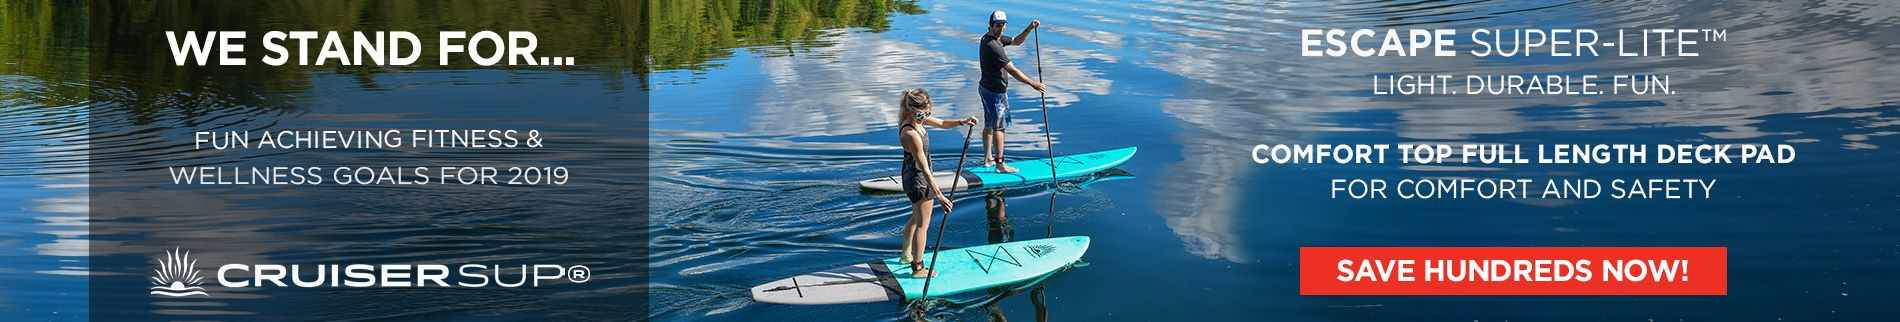 A man and woman riding SUP boards